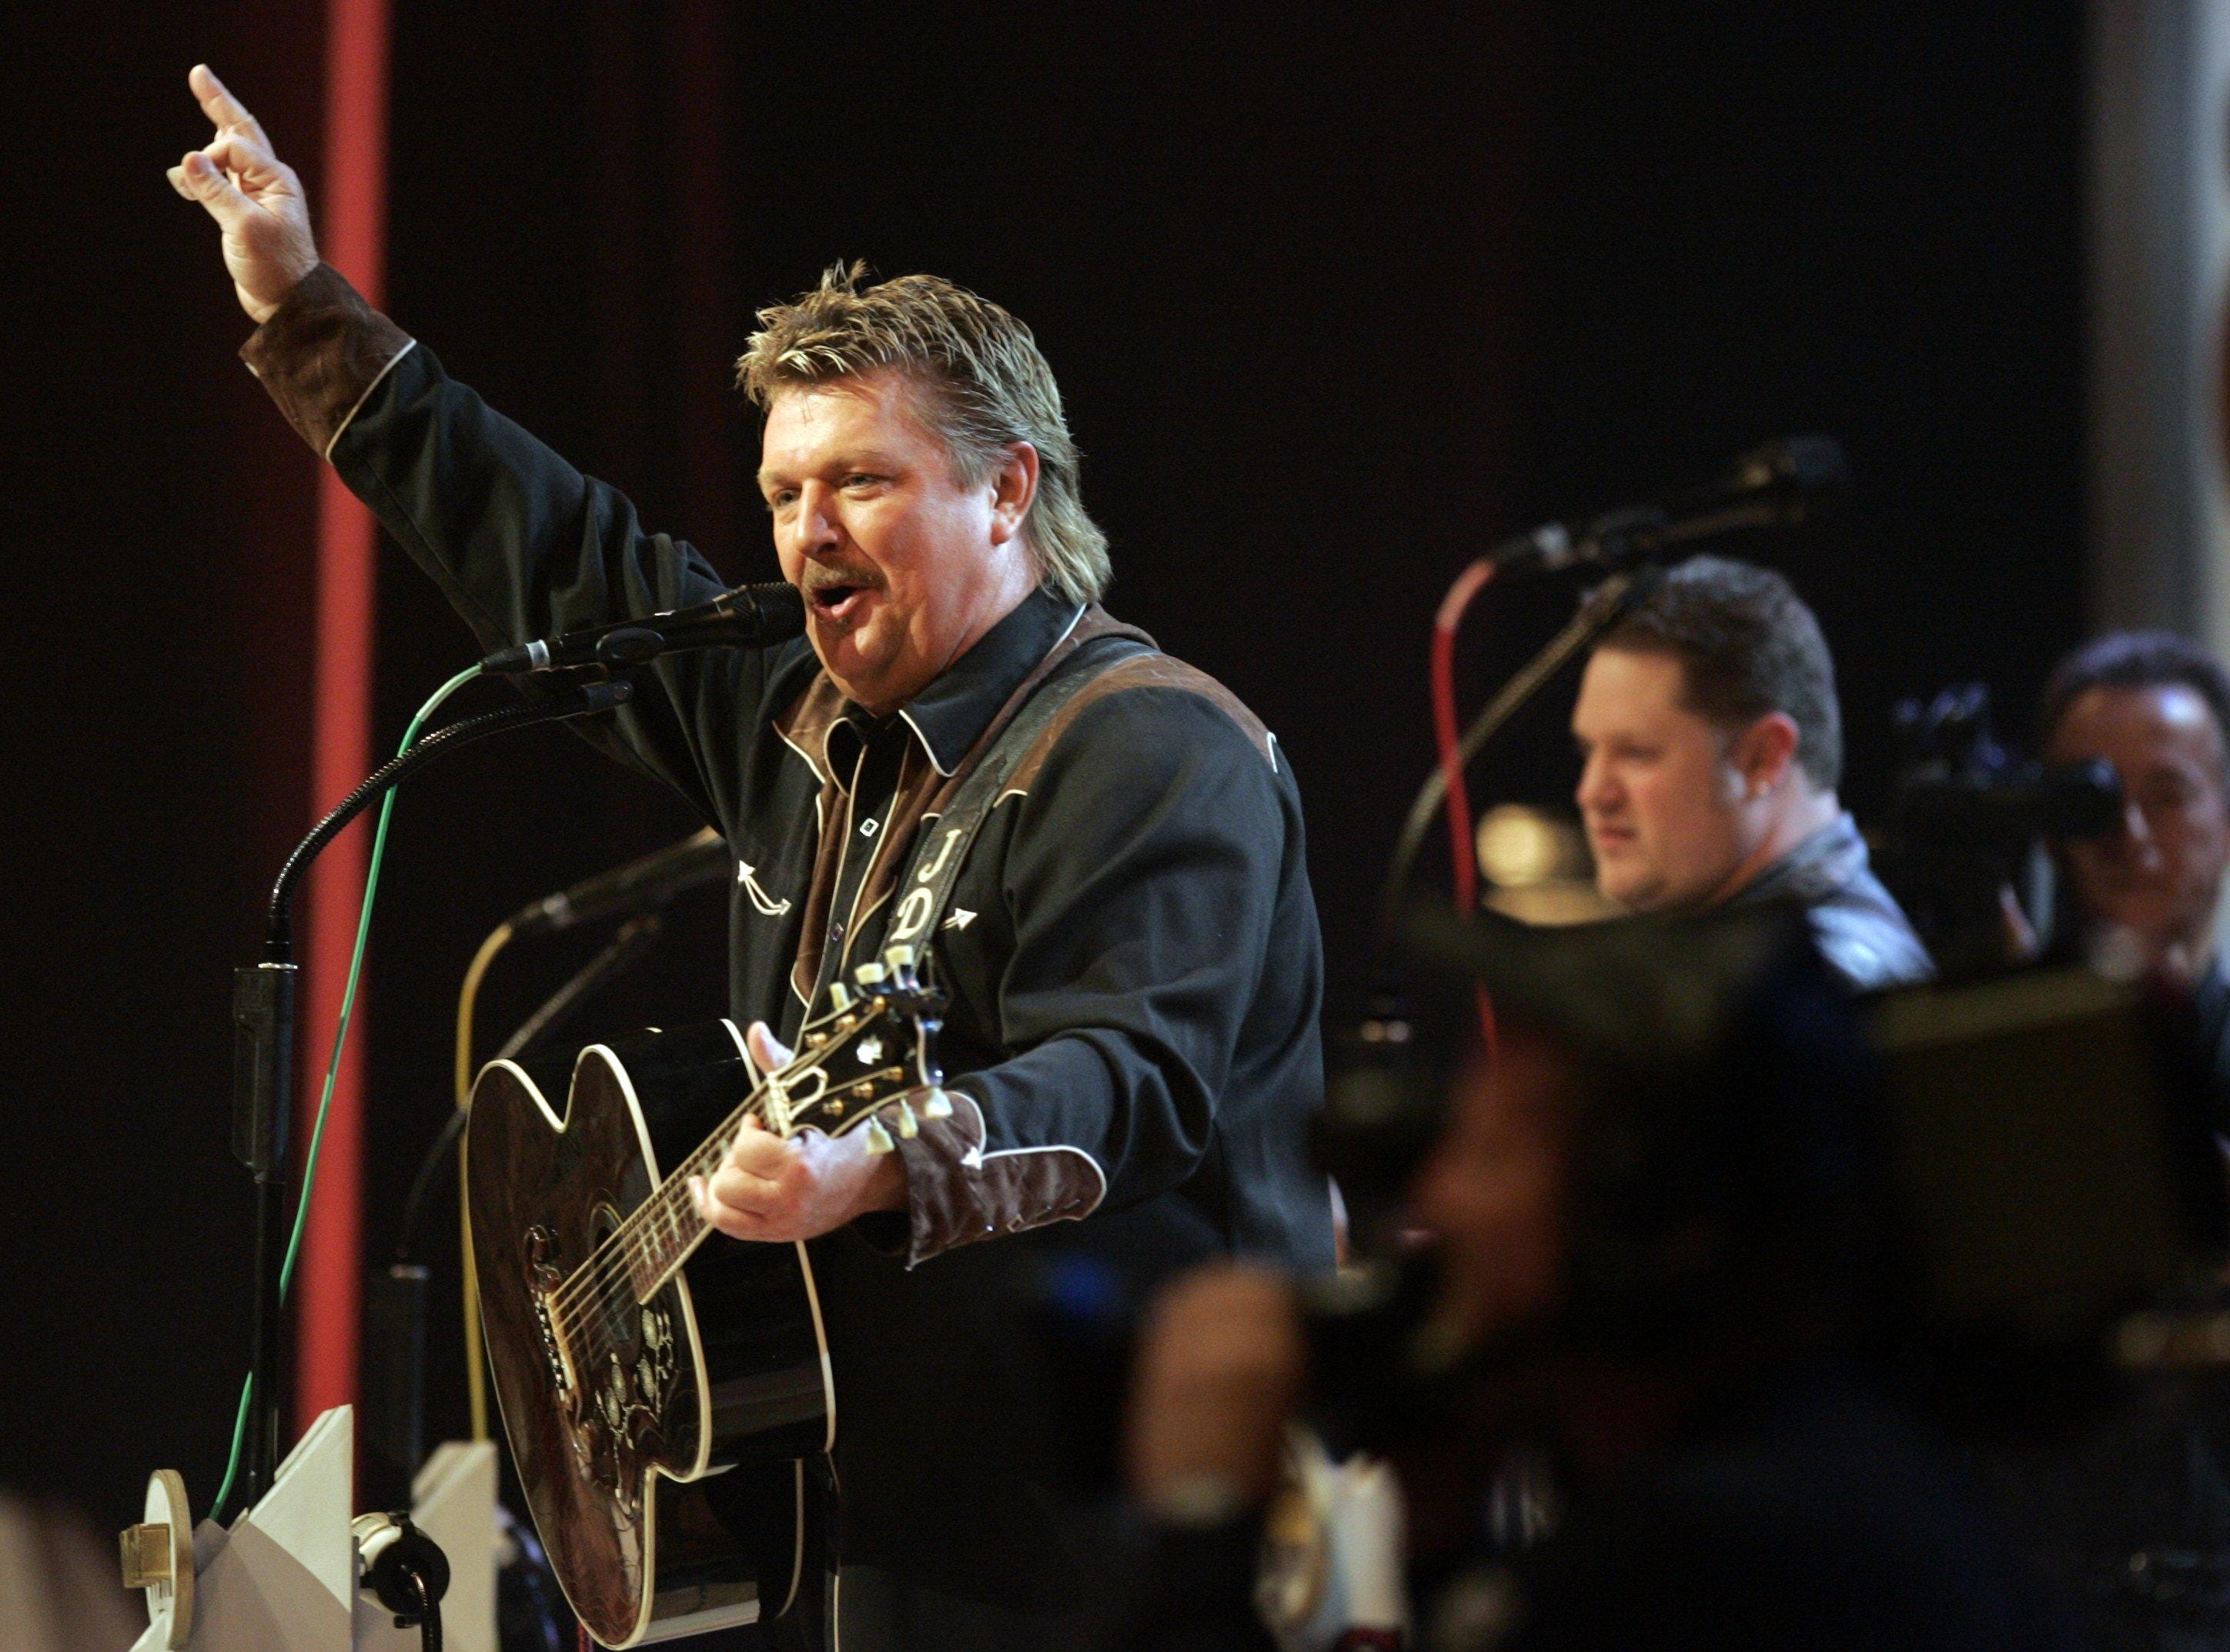 Joe Diffie is scheduled to play the Budweiser Forever Country Stage at CMA Fest 2019.